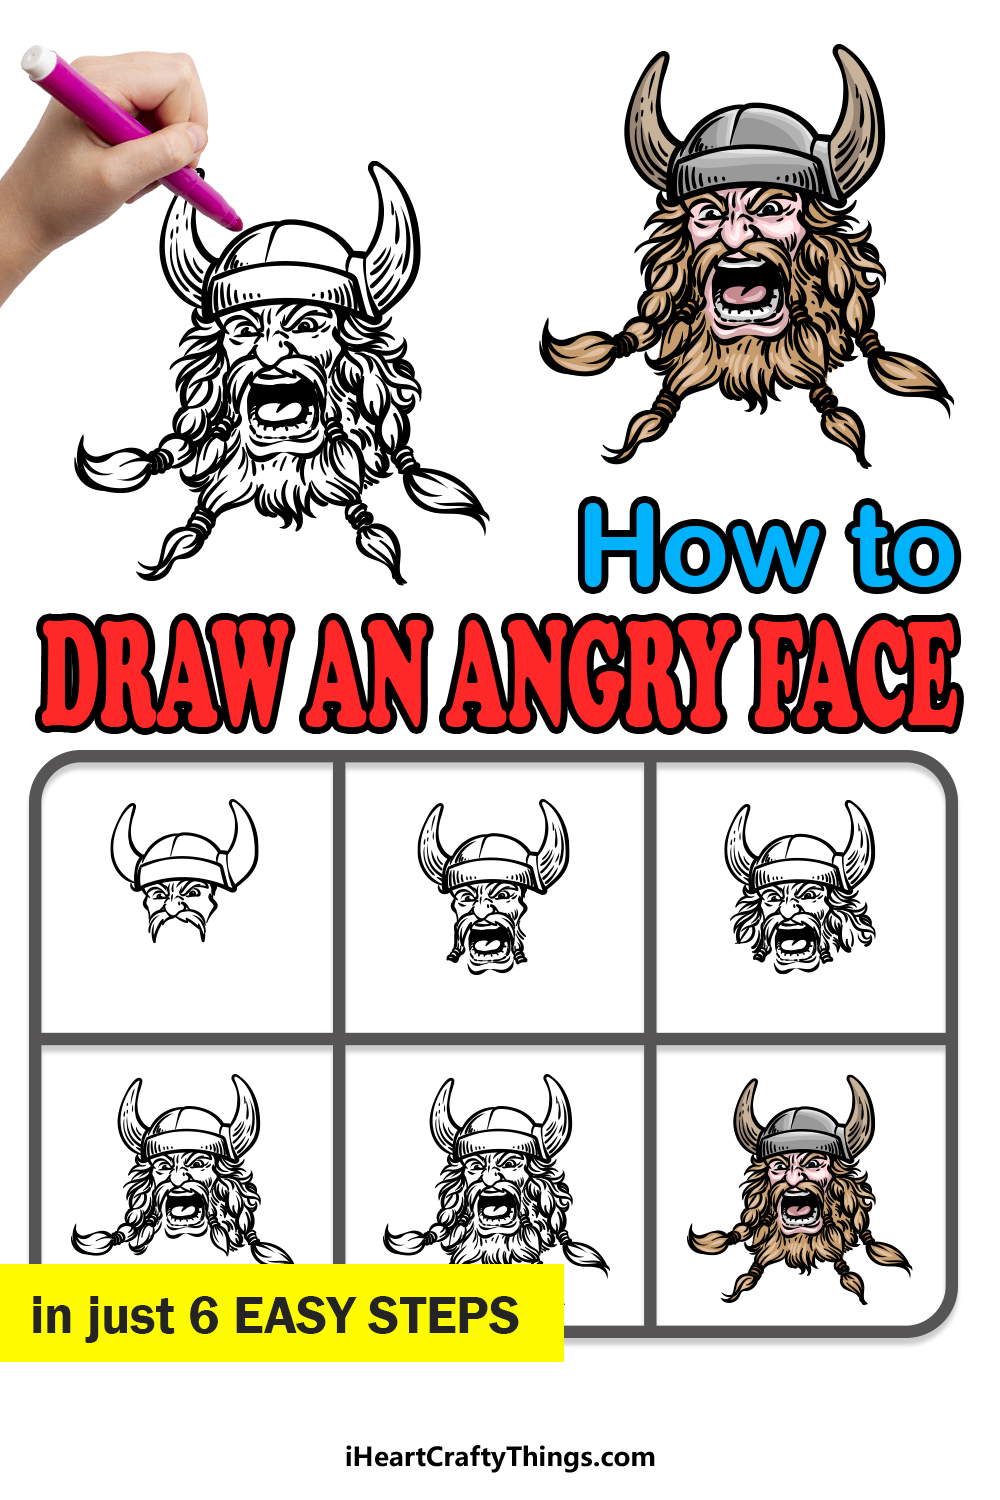 how to draw an angry face in 6 easy steps